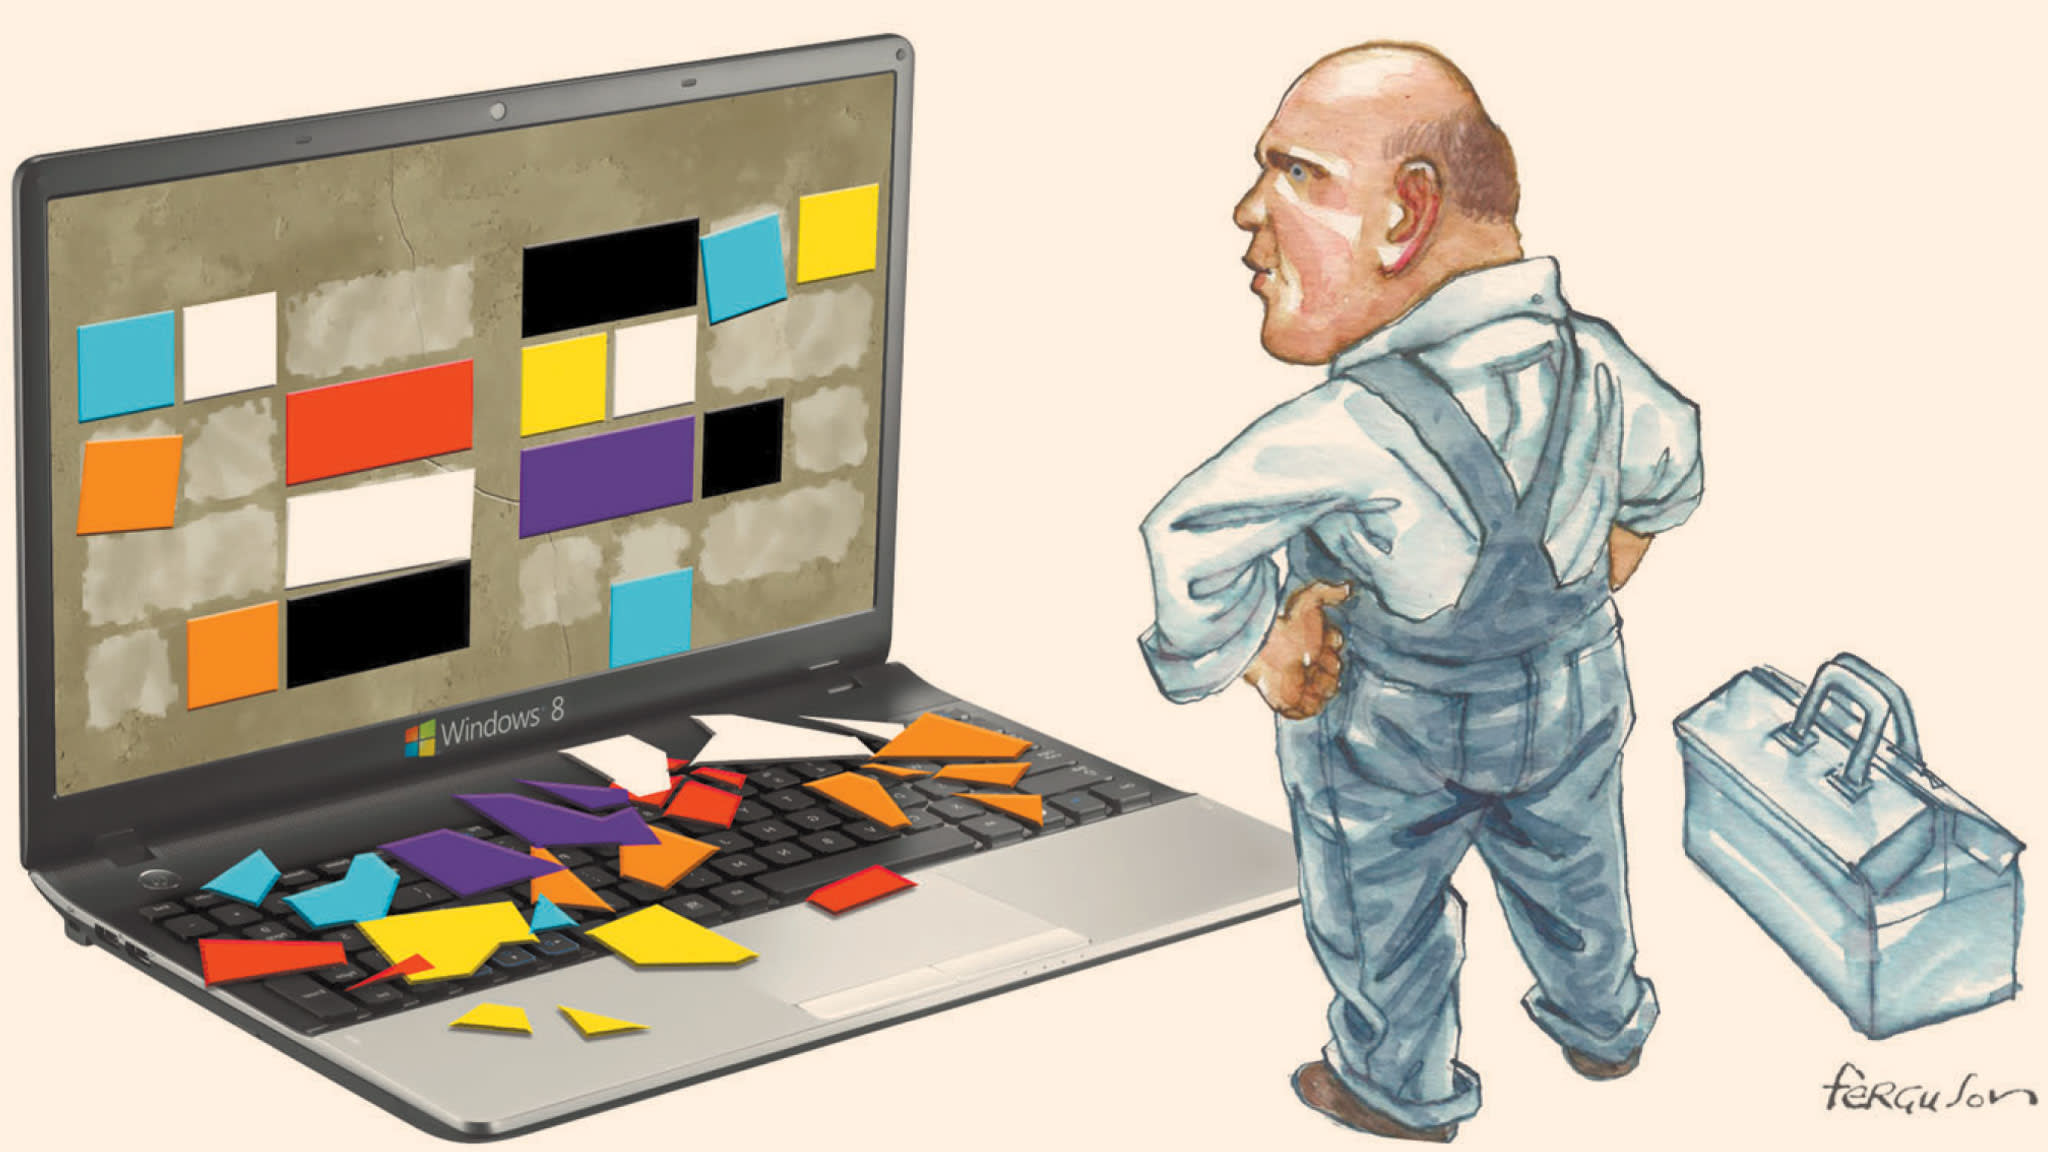 Microsoft has just blown its oldest trick | Financial Times